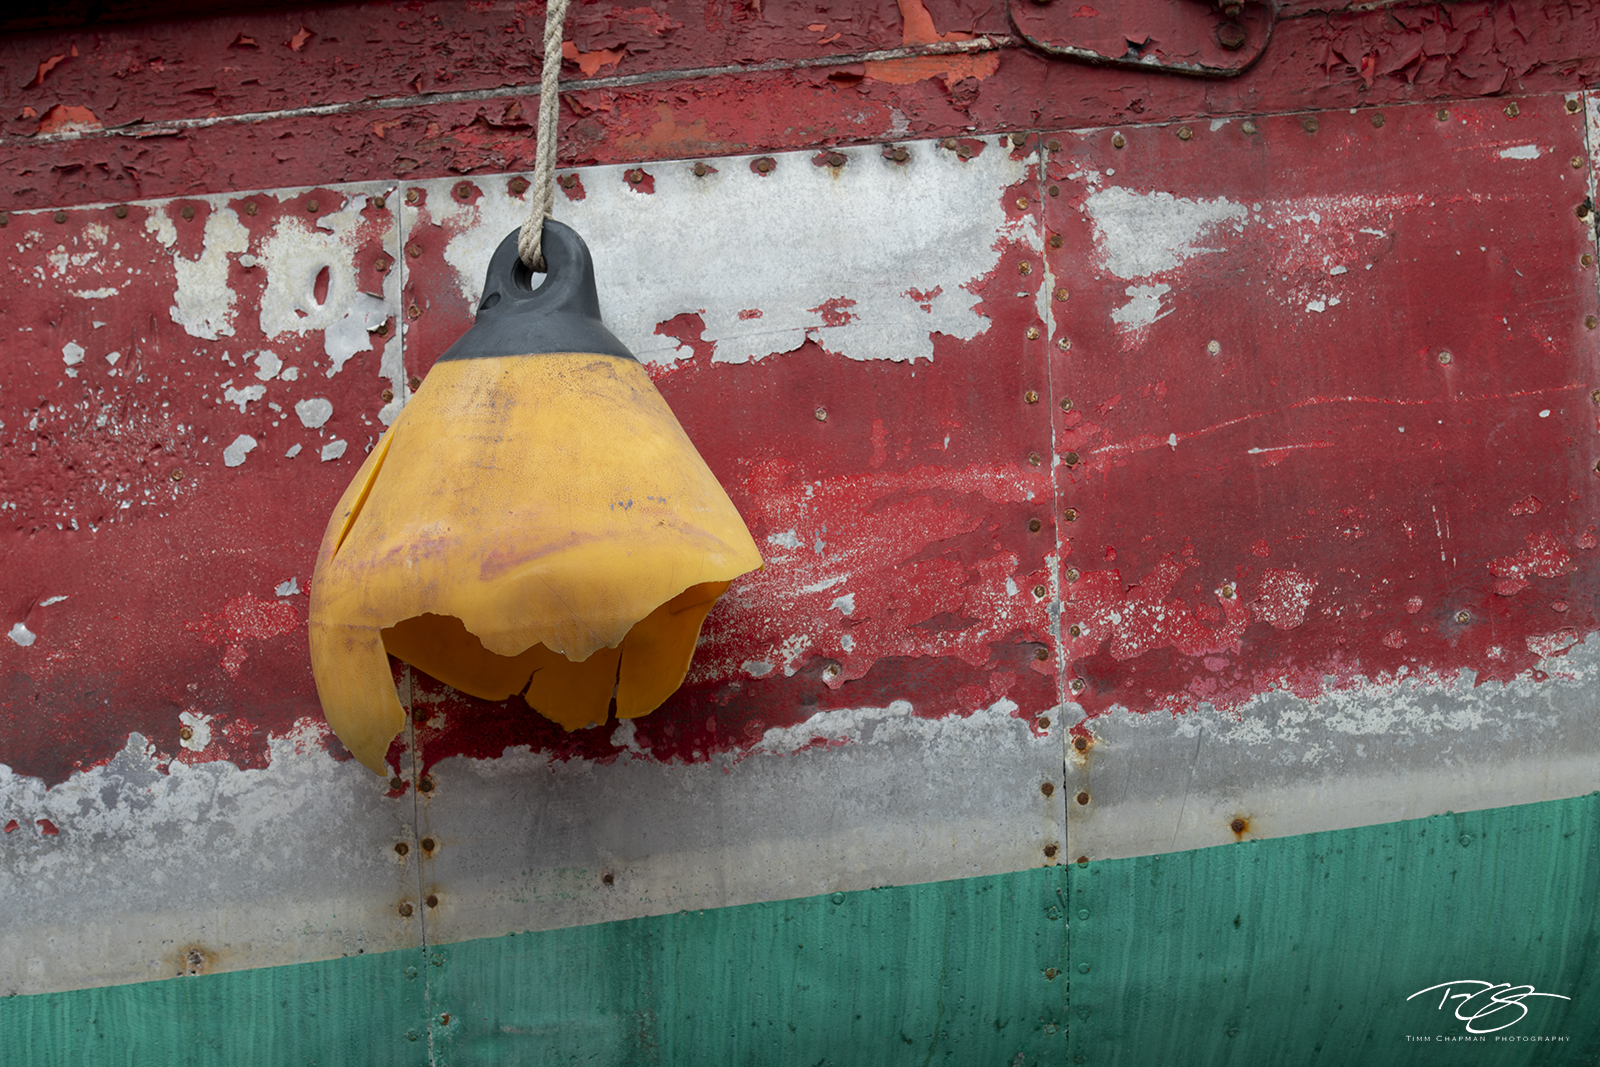 paint; rust; abstract; bow; hull; ship; boat; buoy; broken buoy; damaged buoy; peeled paint; weathered; green; red, photo